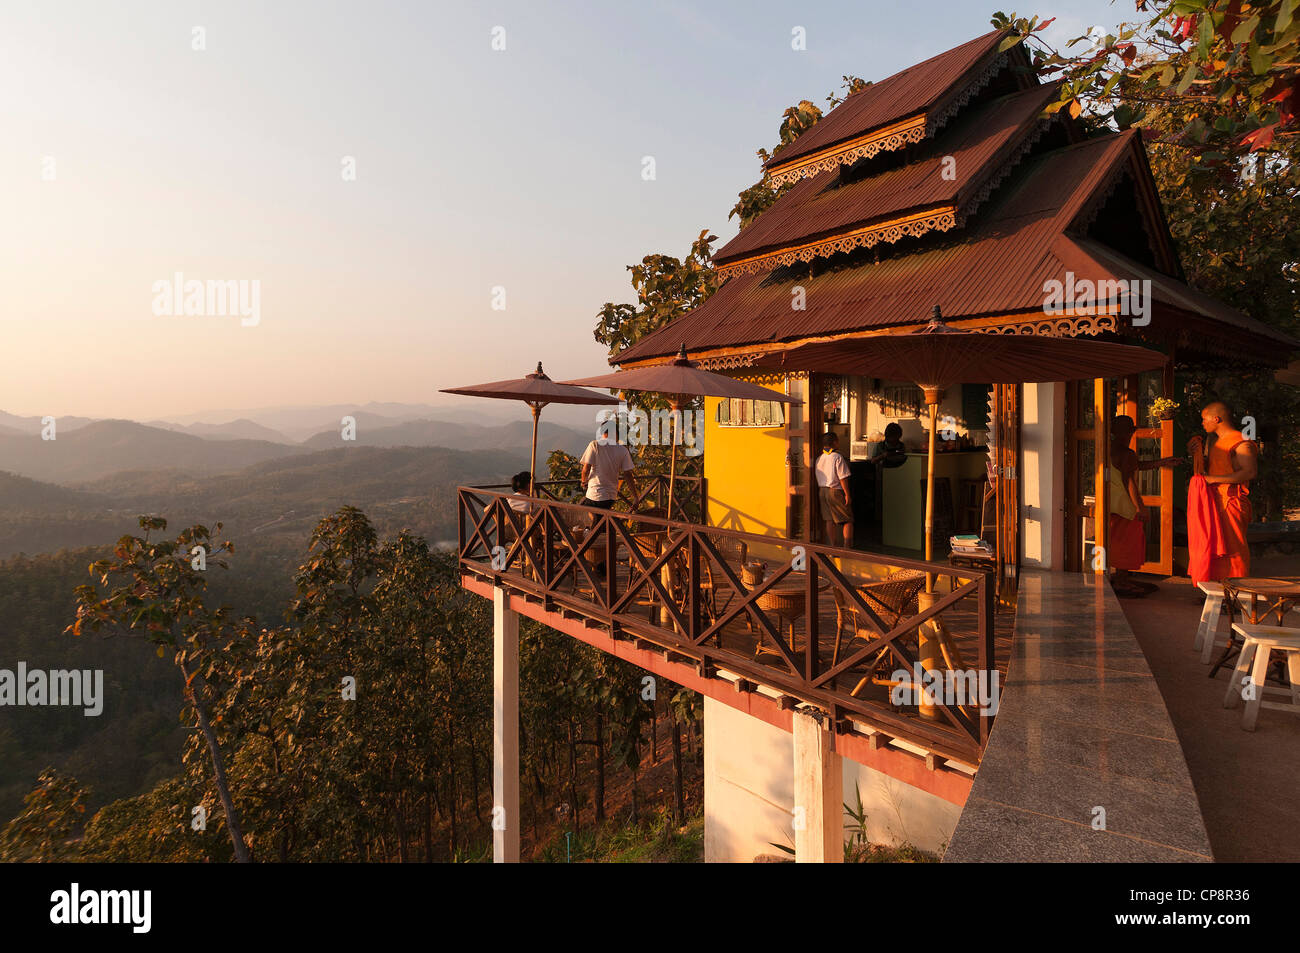 Elk208-3260 Thailand, Mae Hong Son, Wat Phra That Doi Kong Mu, tea house sala - Stock Image